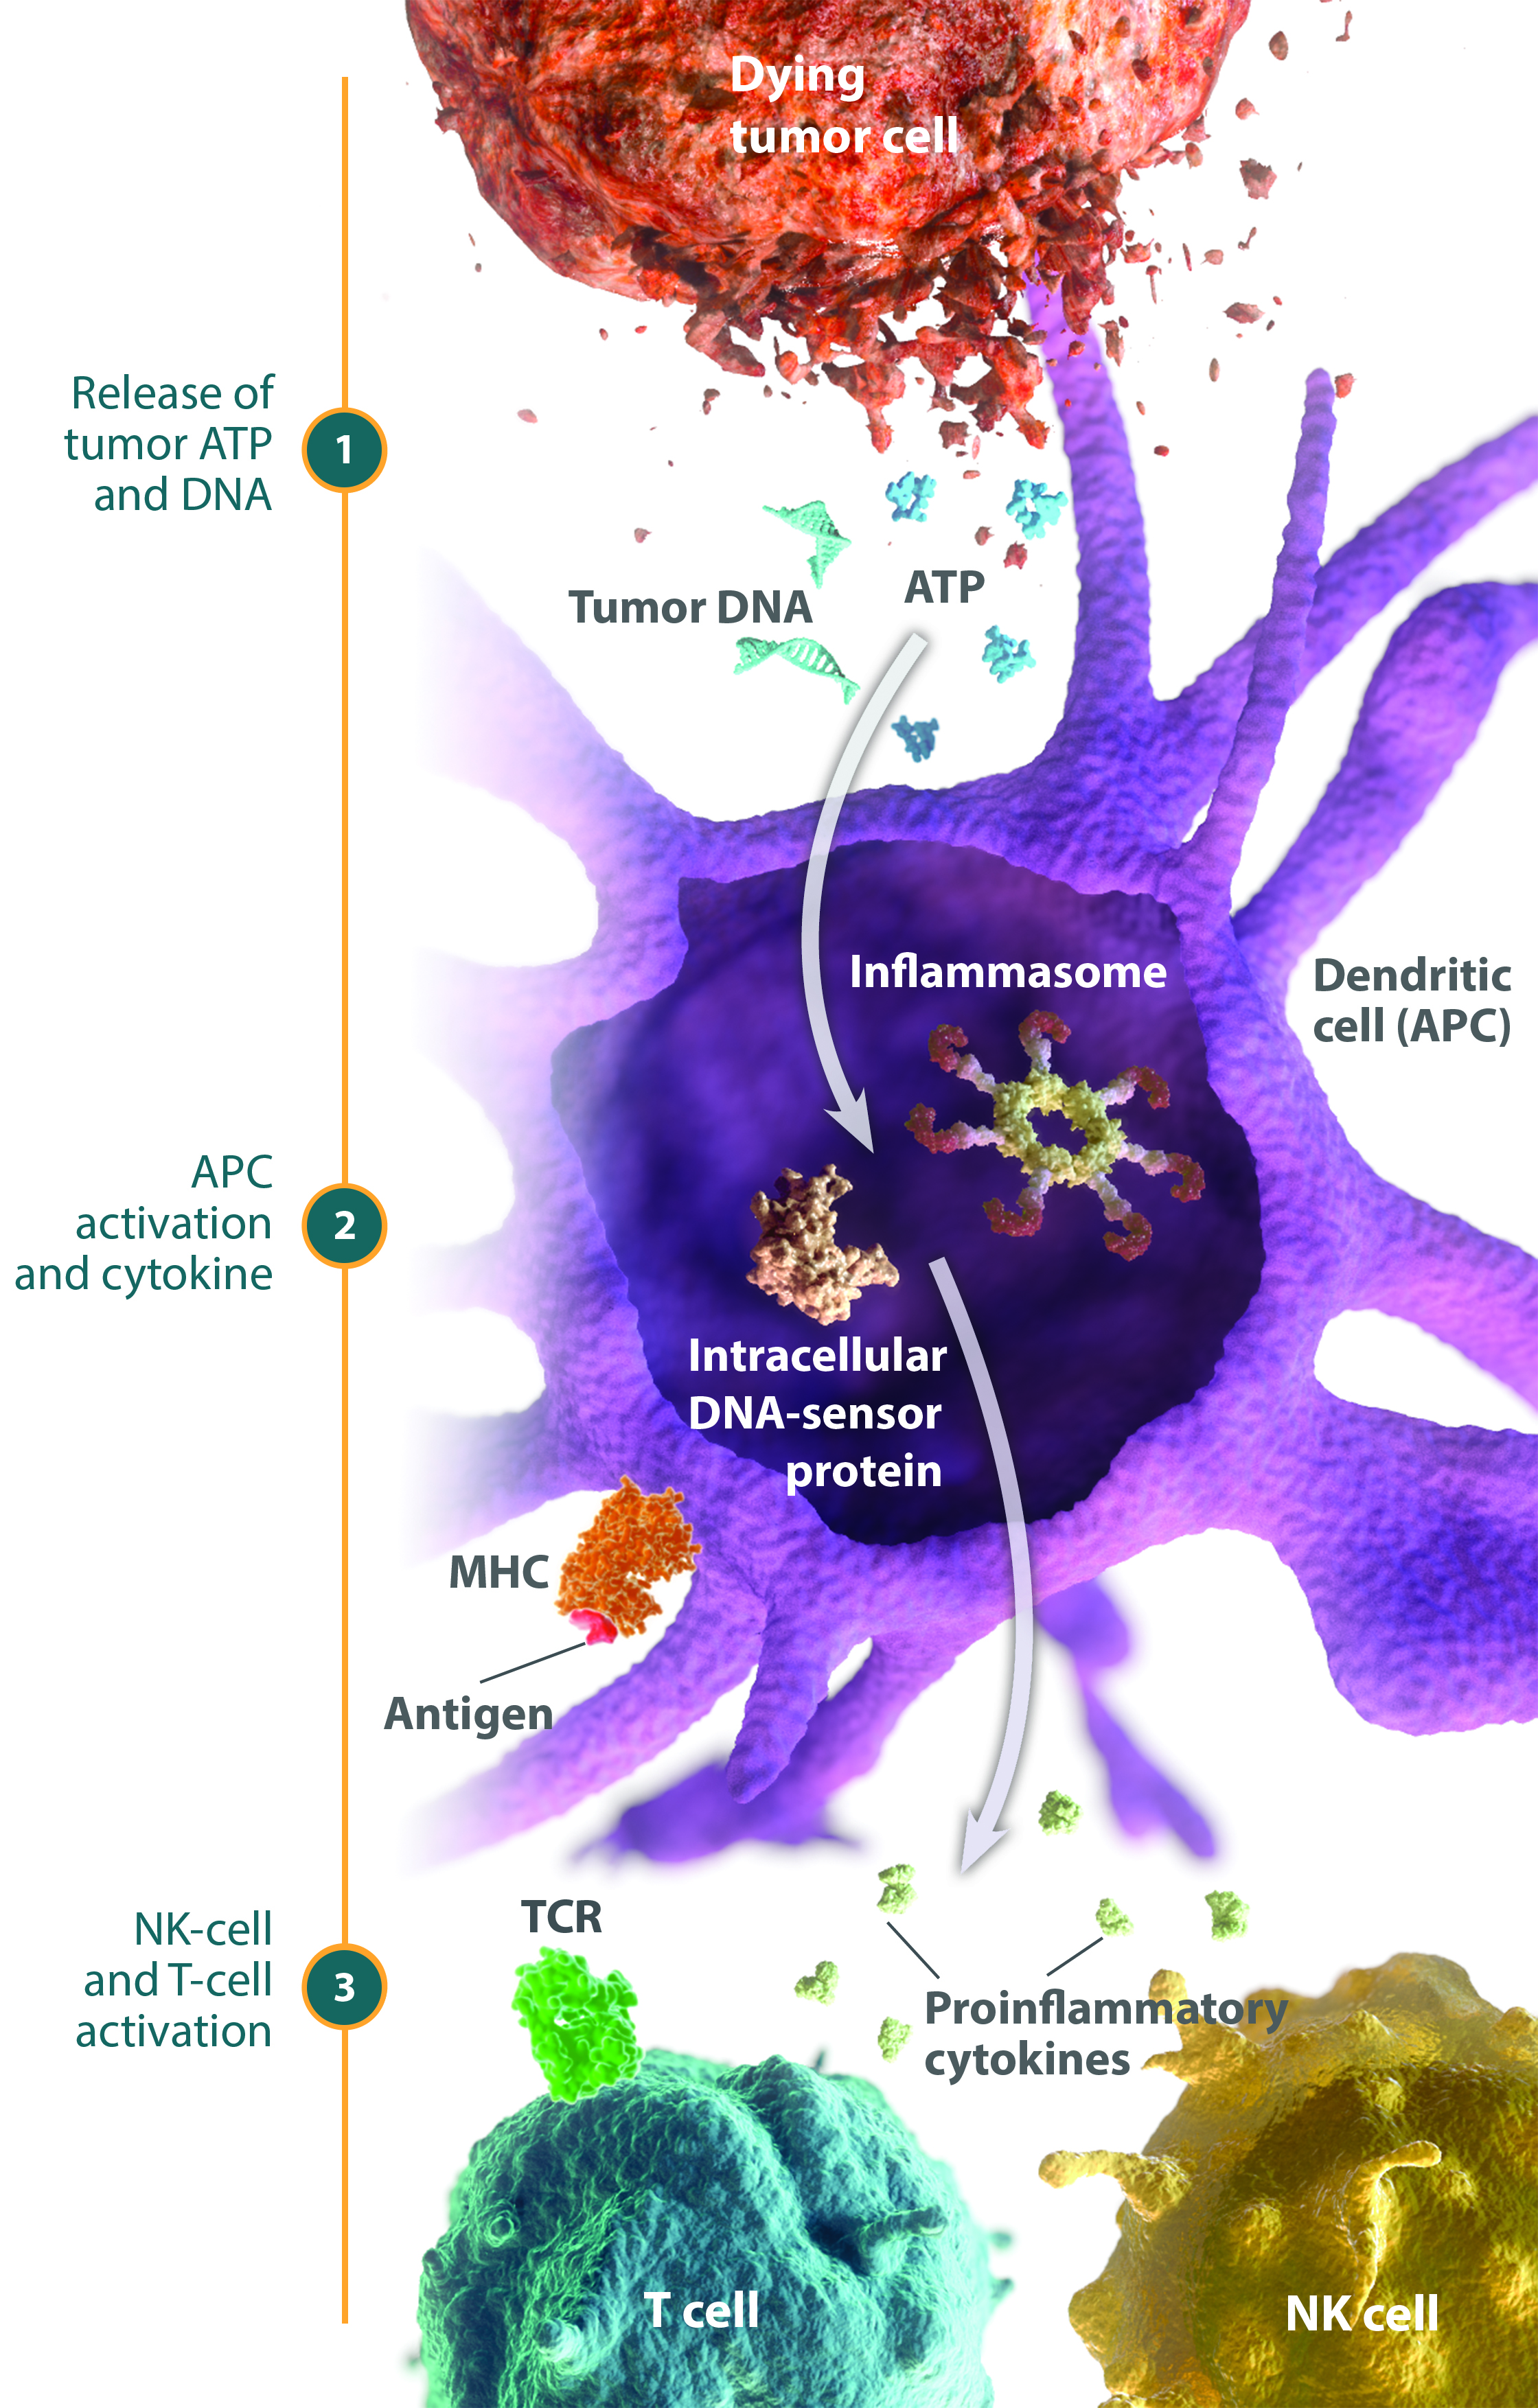 Diagram of inflammasome and intracellular DNA-sensor protein activity inside of a Dendritic cell